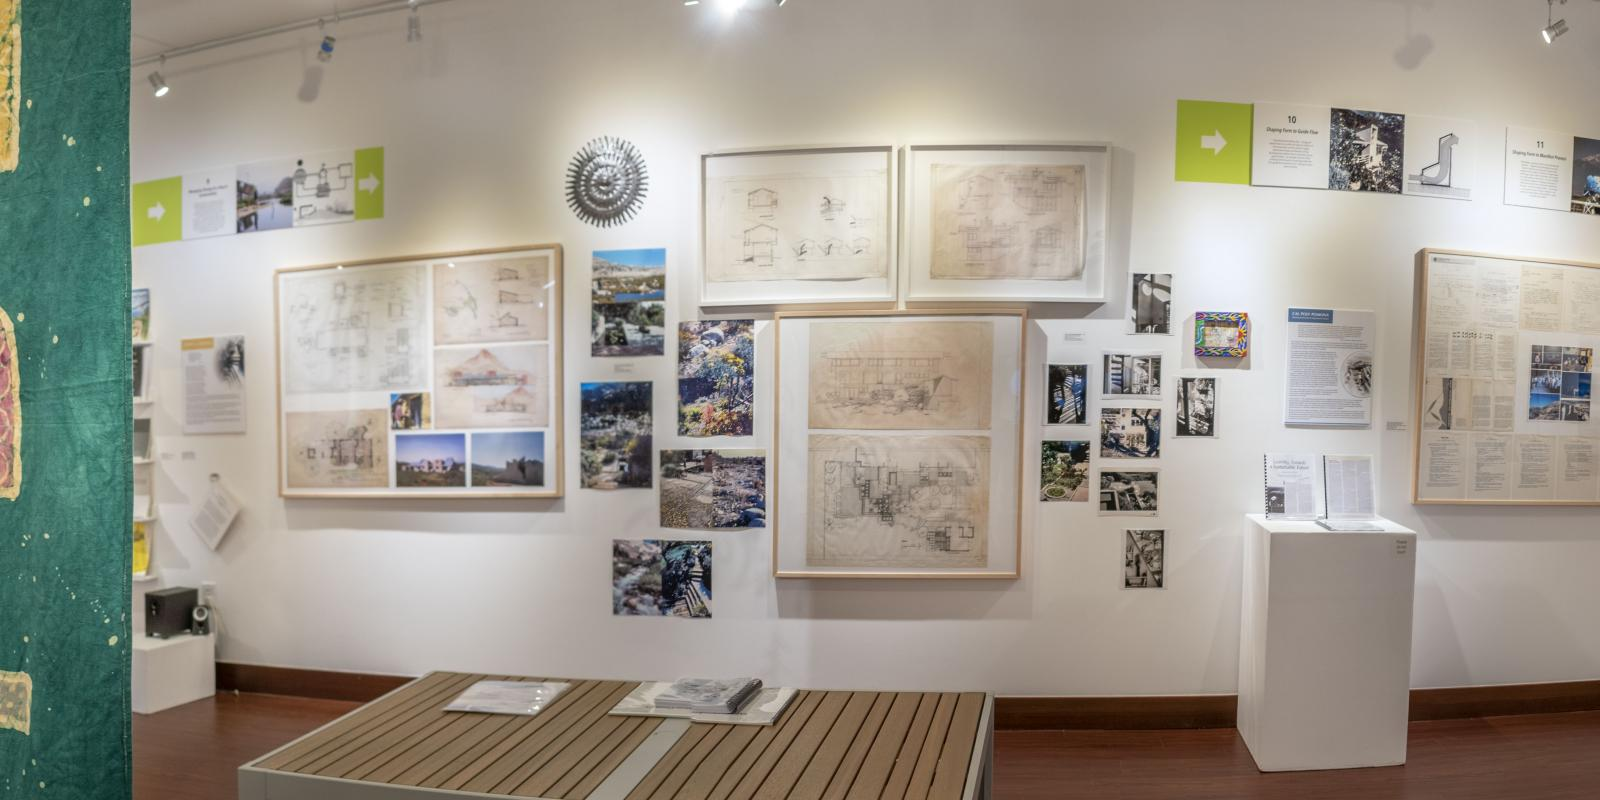 """Installation View, Center of gallery, """"John T. Lyle and the Future of Regenerative Design"""" Exhibition, Oct.17, 2019 to Dec.8, 2019, Curator: Cybele Lyle, Don B. Huntley Gallery, Cal Poly Pomona.llery, Exhibition: John T. Lyle and the Future of Regenerative Design, Oct.17, 2019 to Dec.8, 2019, Curator: Cybele Lyle, W. Keith & Janet Kellogg Art Gallery, Cal Poly Pomona."""